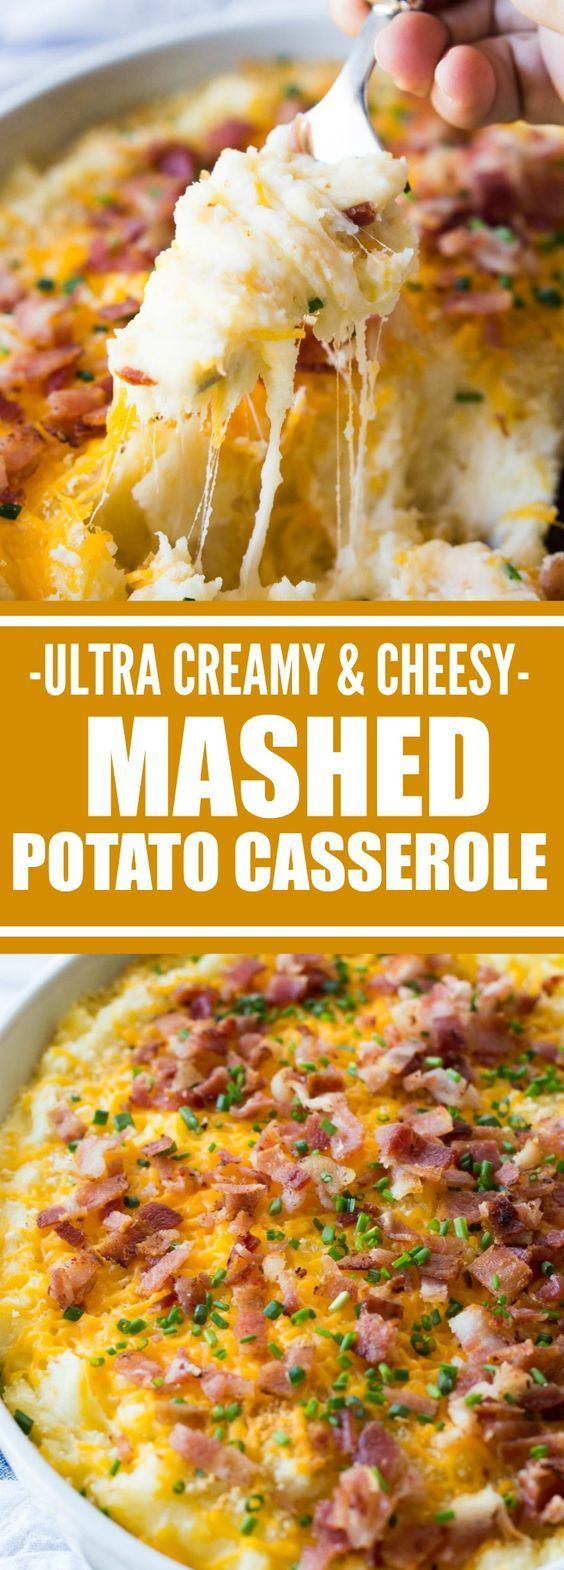 I wanted to save time on preparing somethings so I chose this recipe...NOBODY knew they were instant mashed potatoes and I didn't mention i...